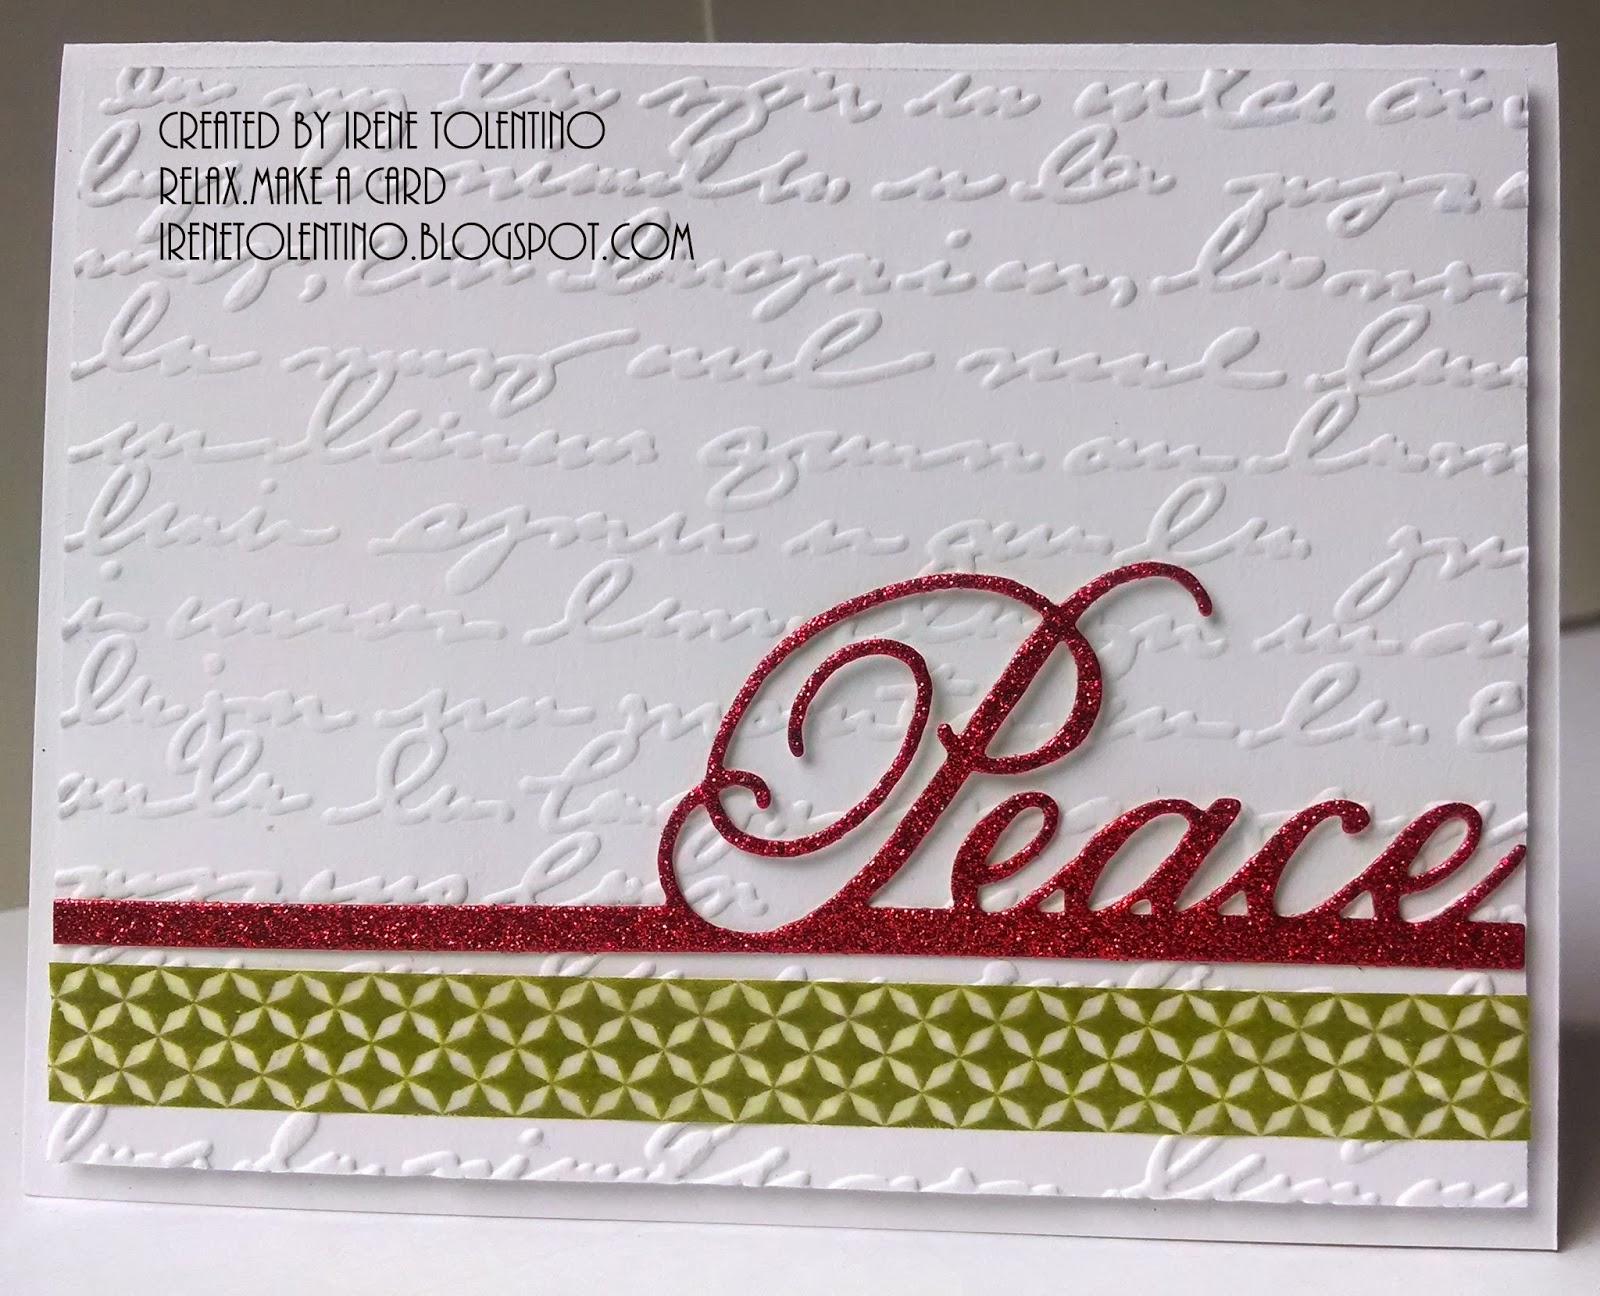 Relax Make A Card Holiday Cards Peace And Joy Ii